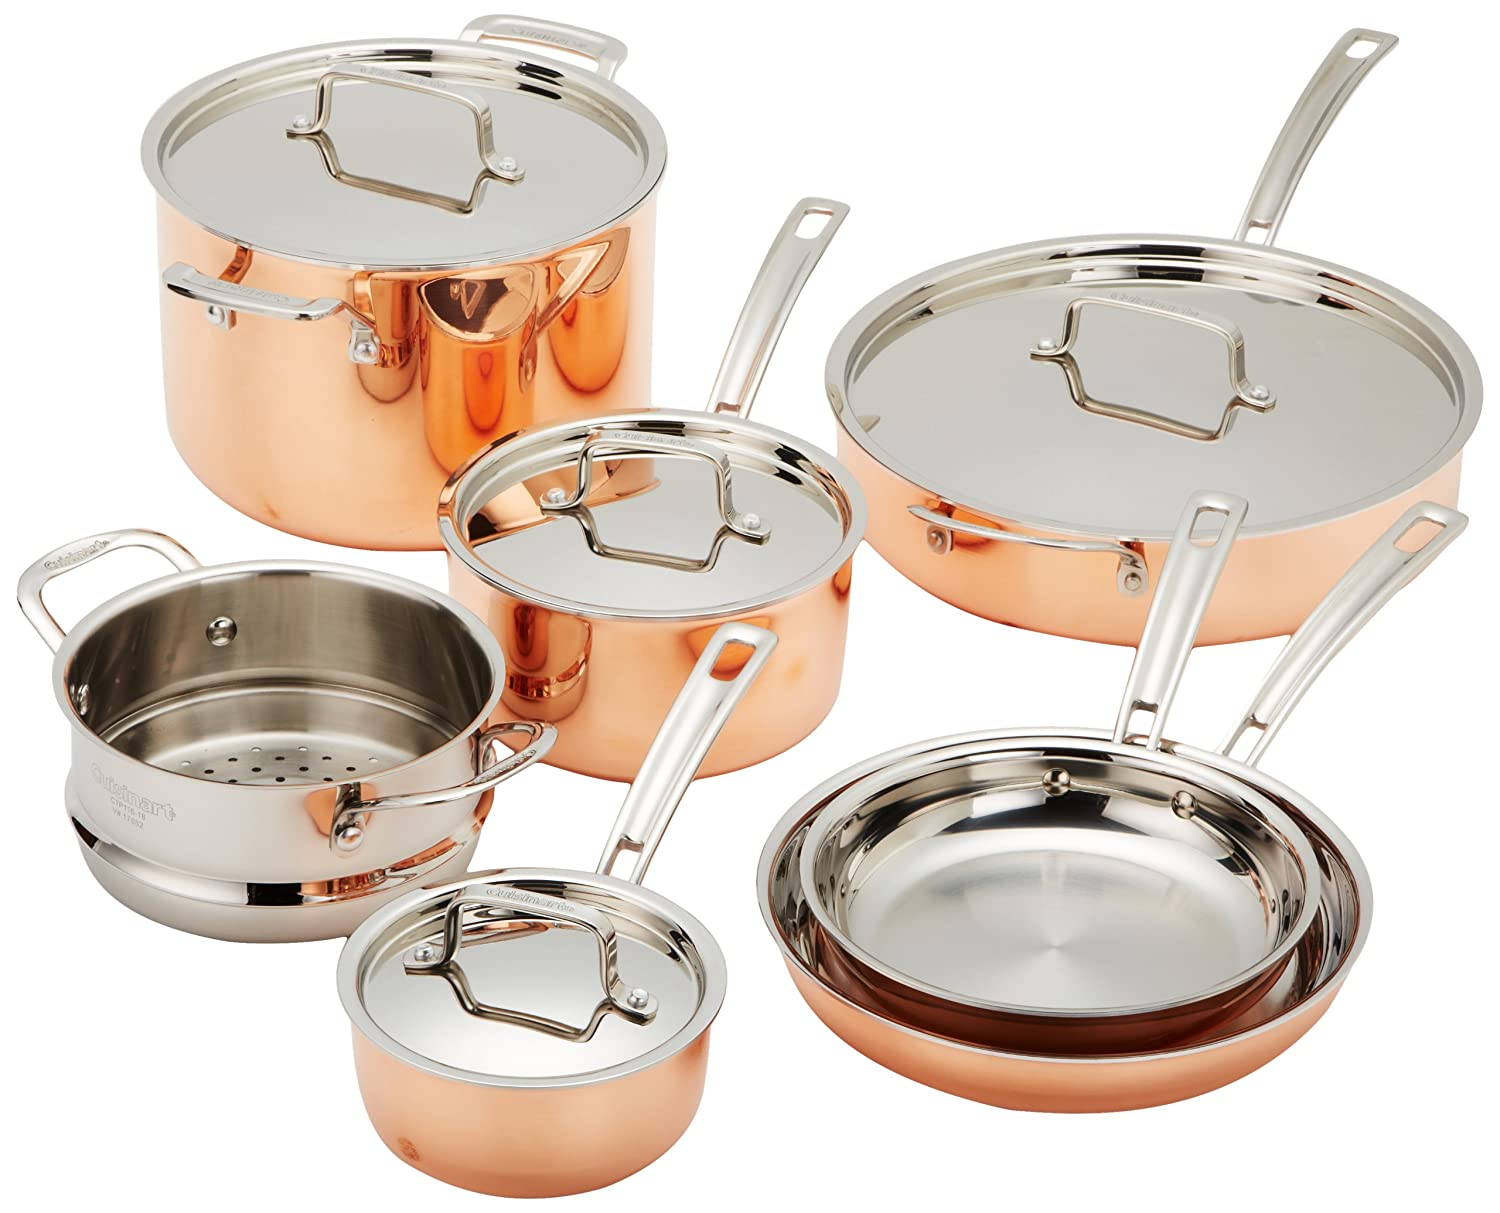 Cuisinart CTP-11AM Copper Tri-Ply Stainless Steel 11-Piece Cookware Set $329.99